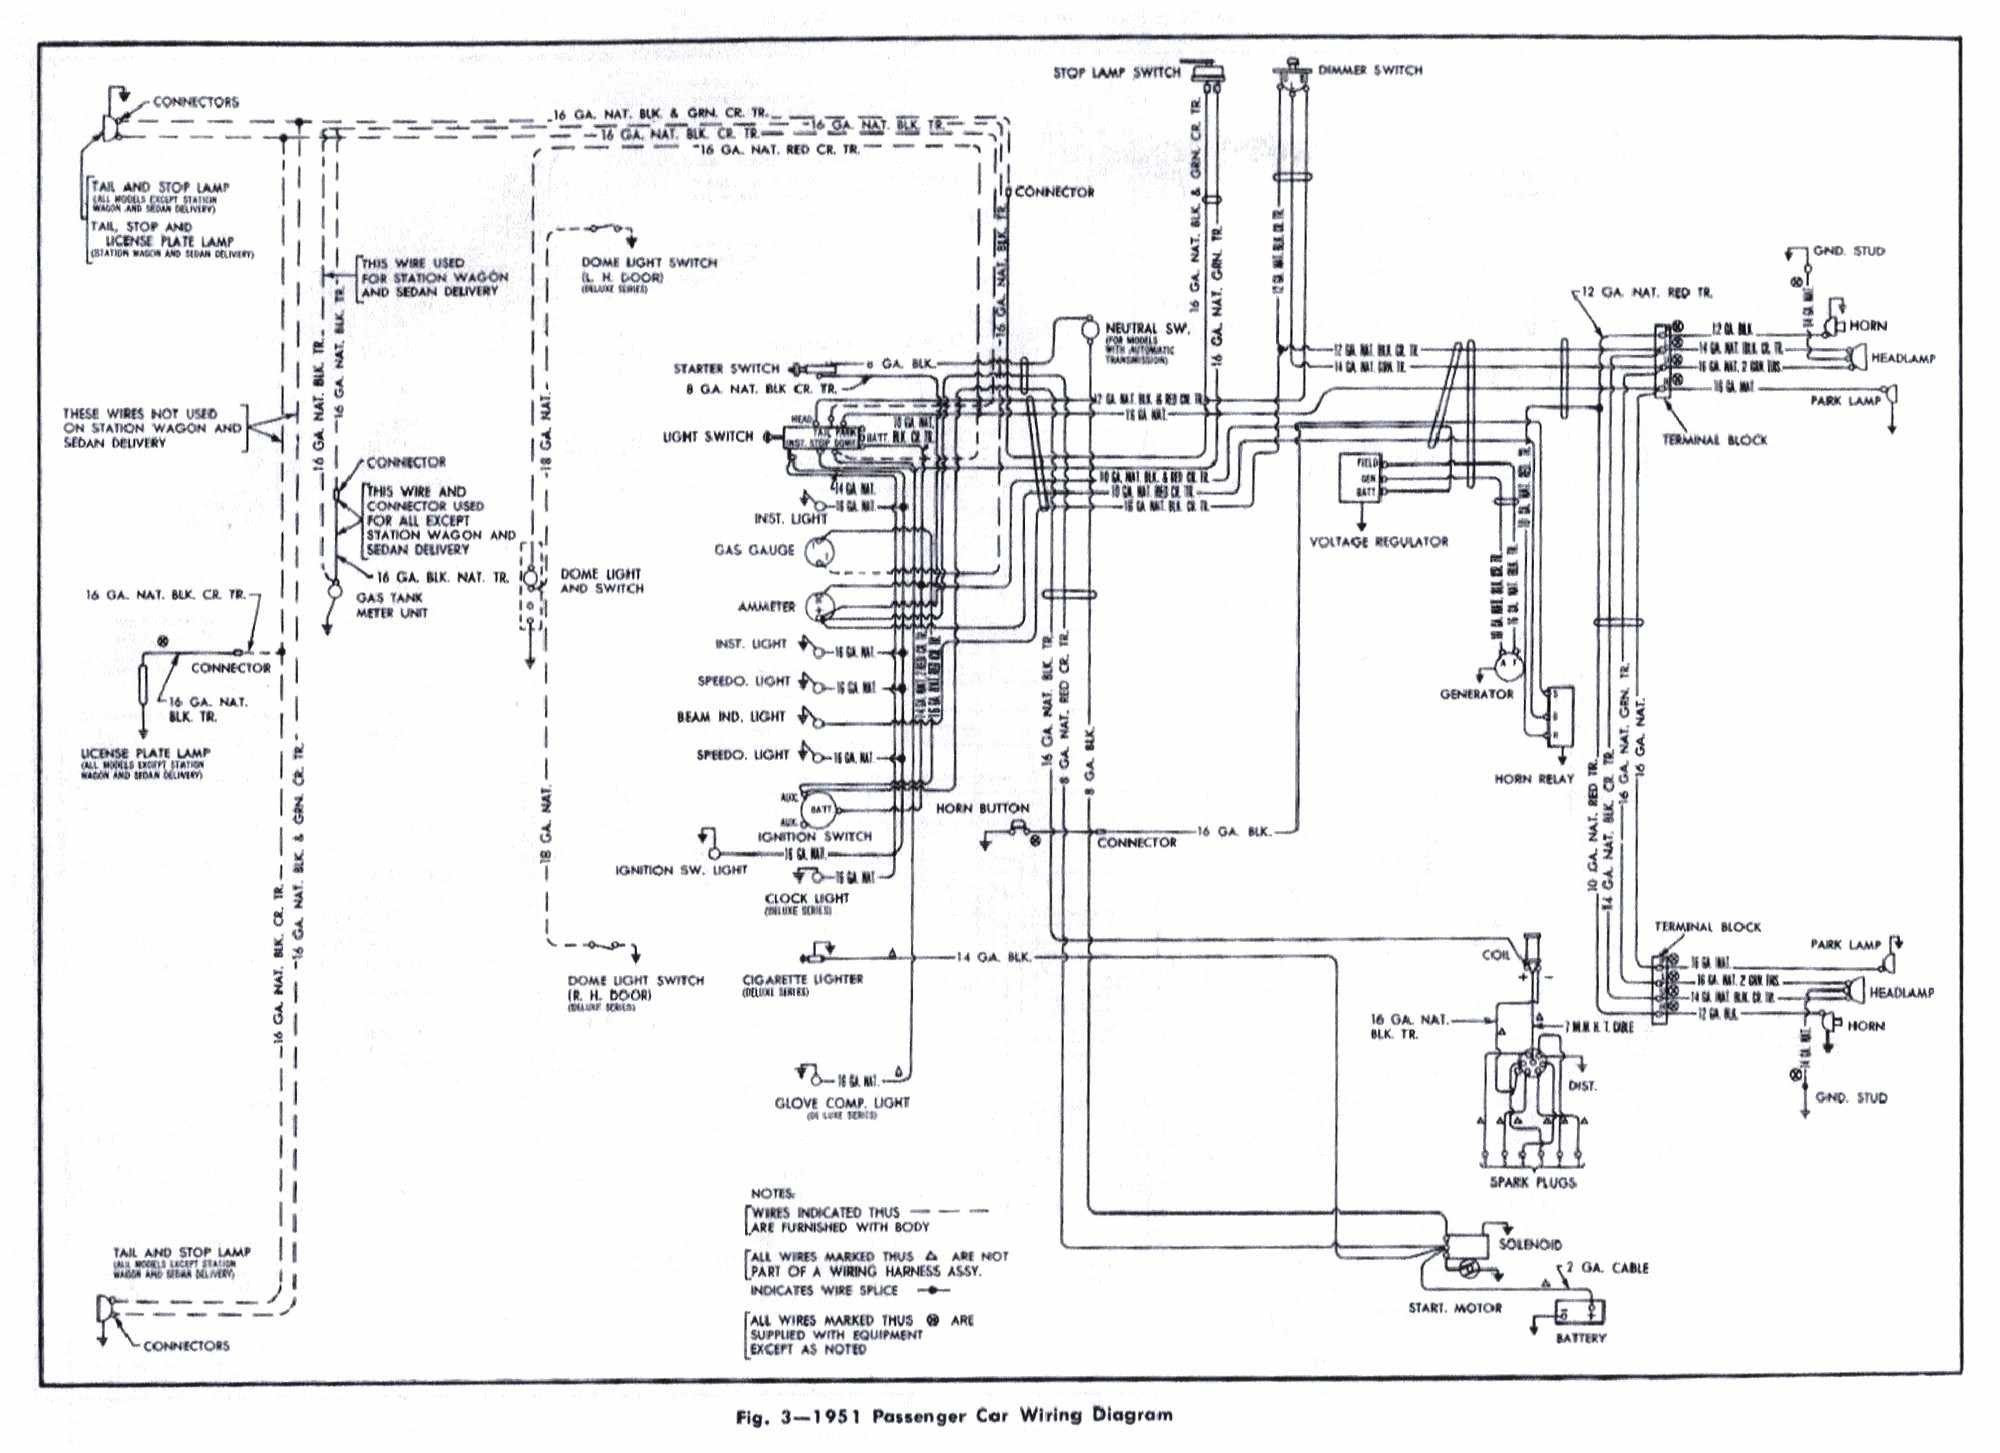 1979 Corvette Wiring Diagram